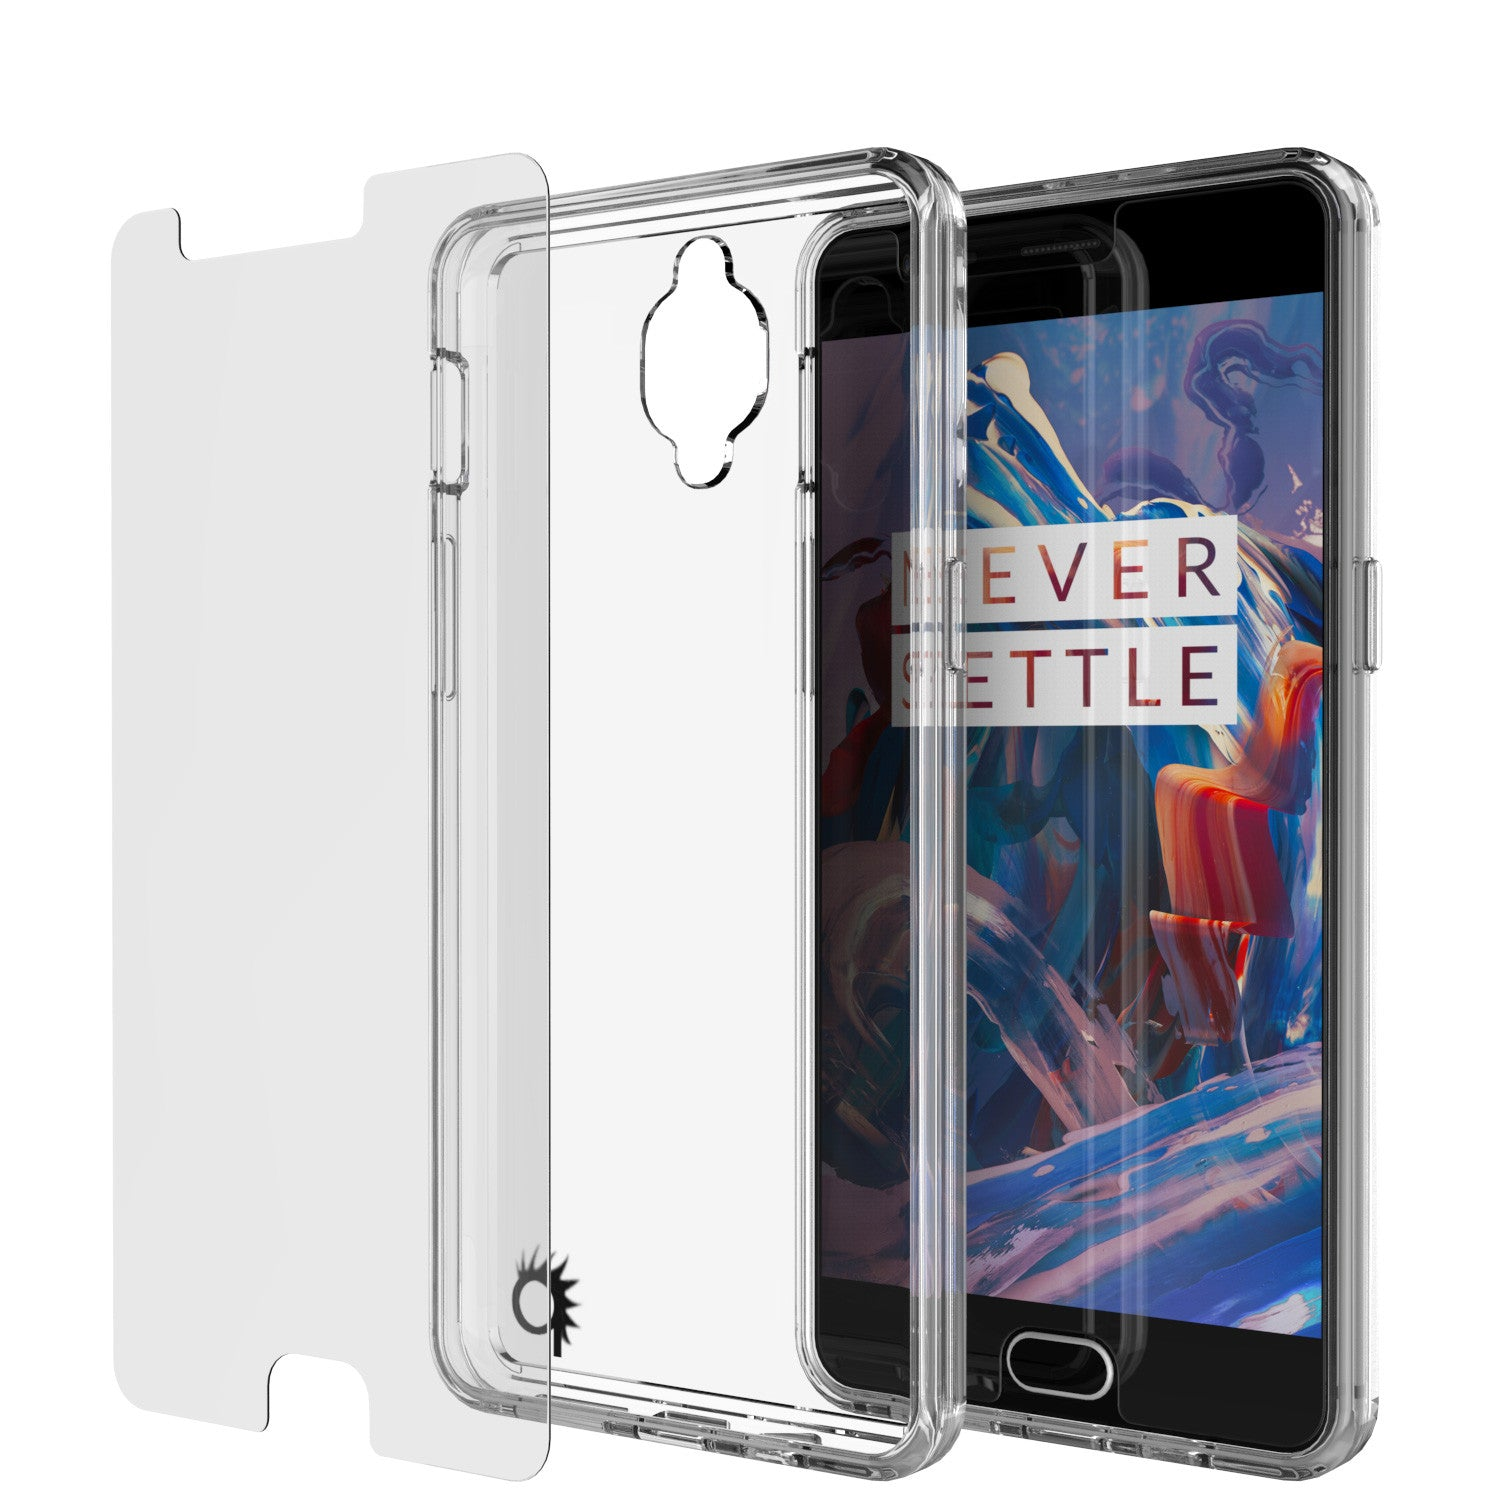 OnePlus 3 Case Punkcase® LUCID 2.0 Clear Series w/ SHIELD GLASS Lifetime Warranty Exchange